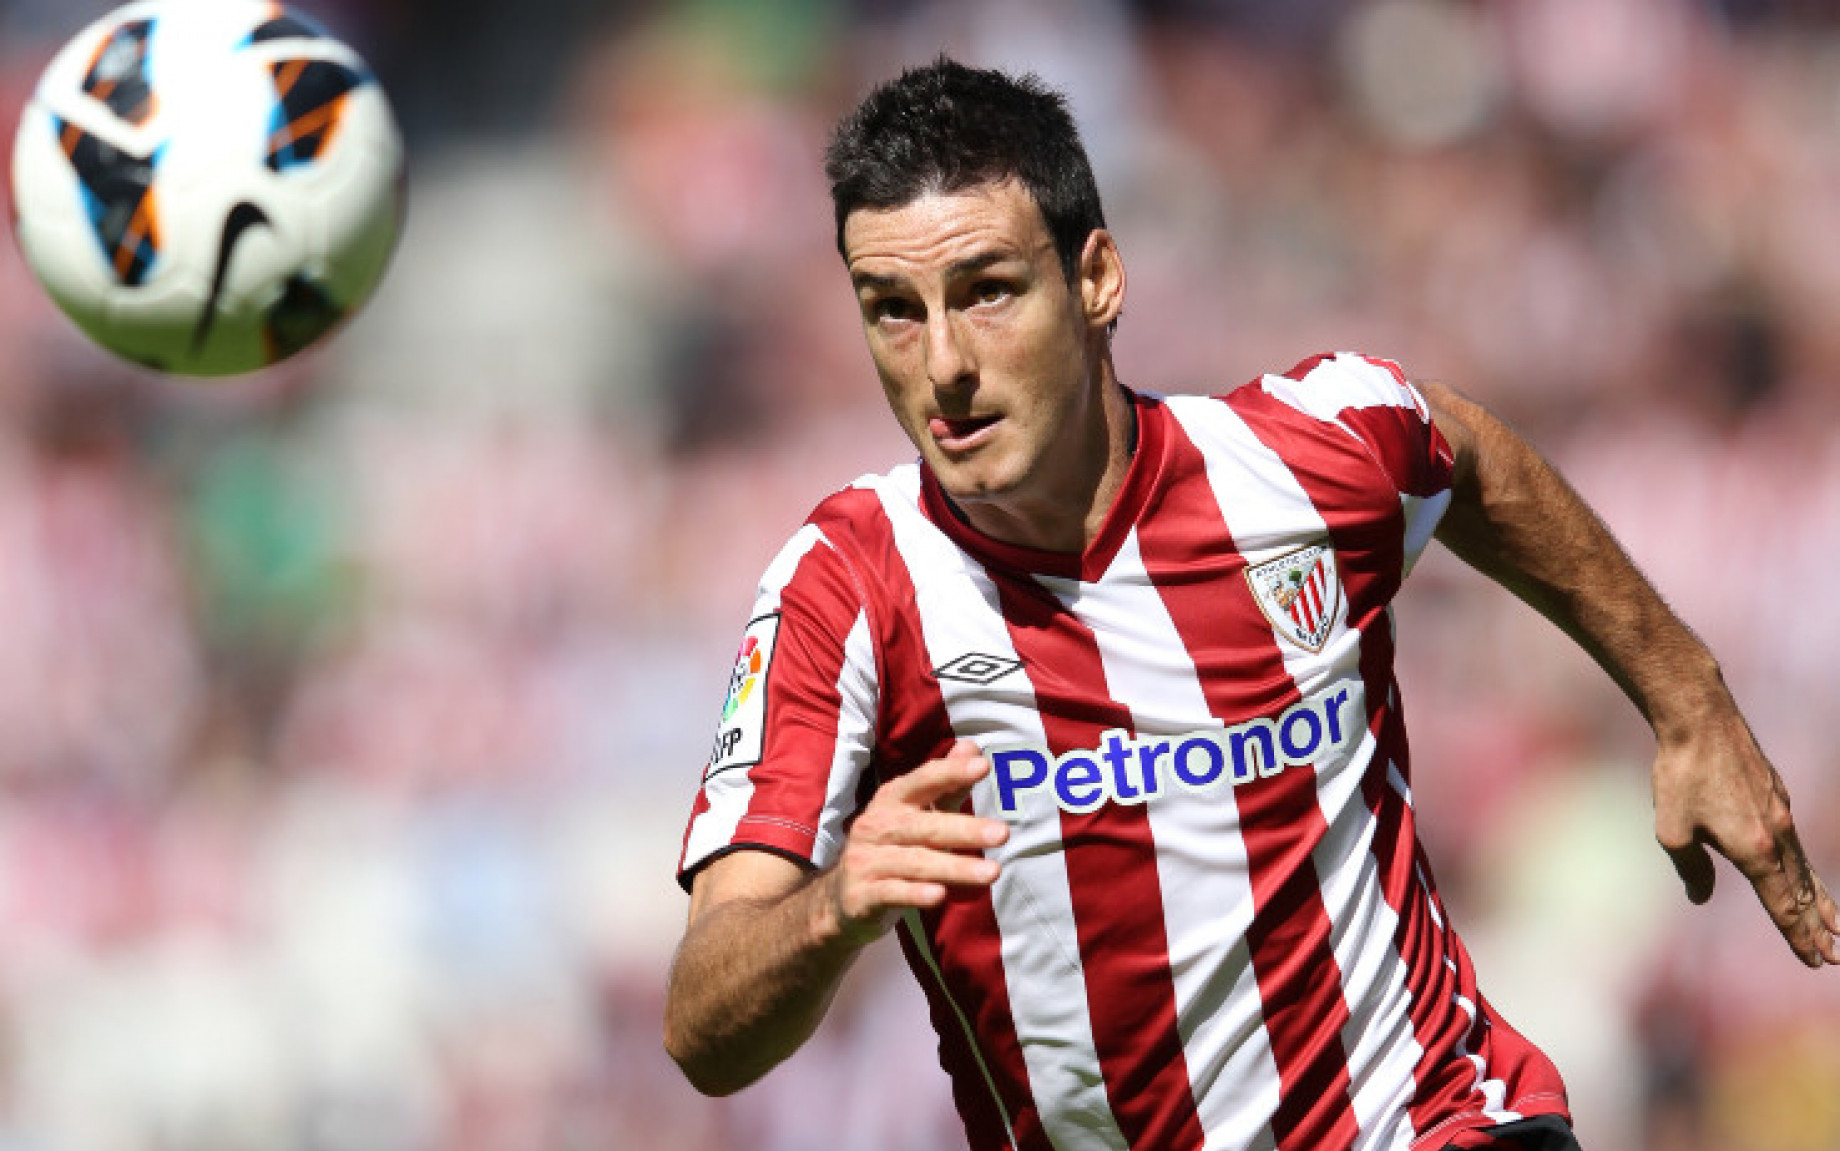 Aduriz Athletic Bilbao wikimedia commons.jpg